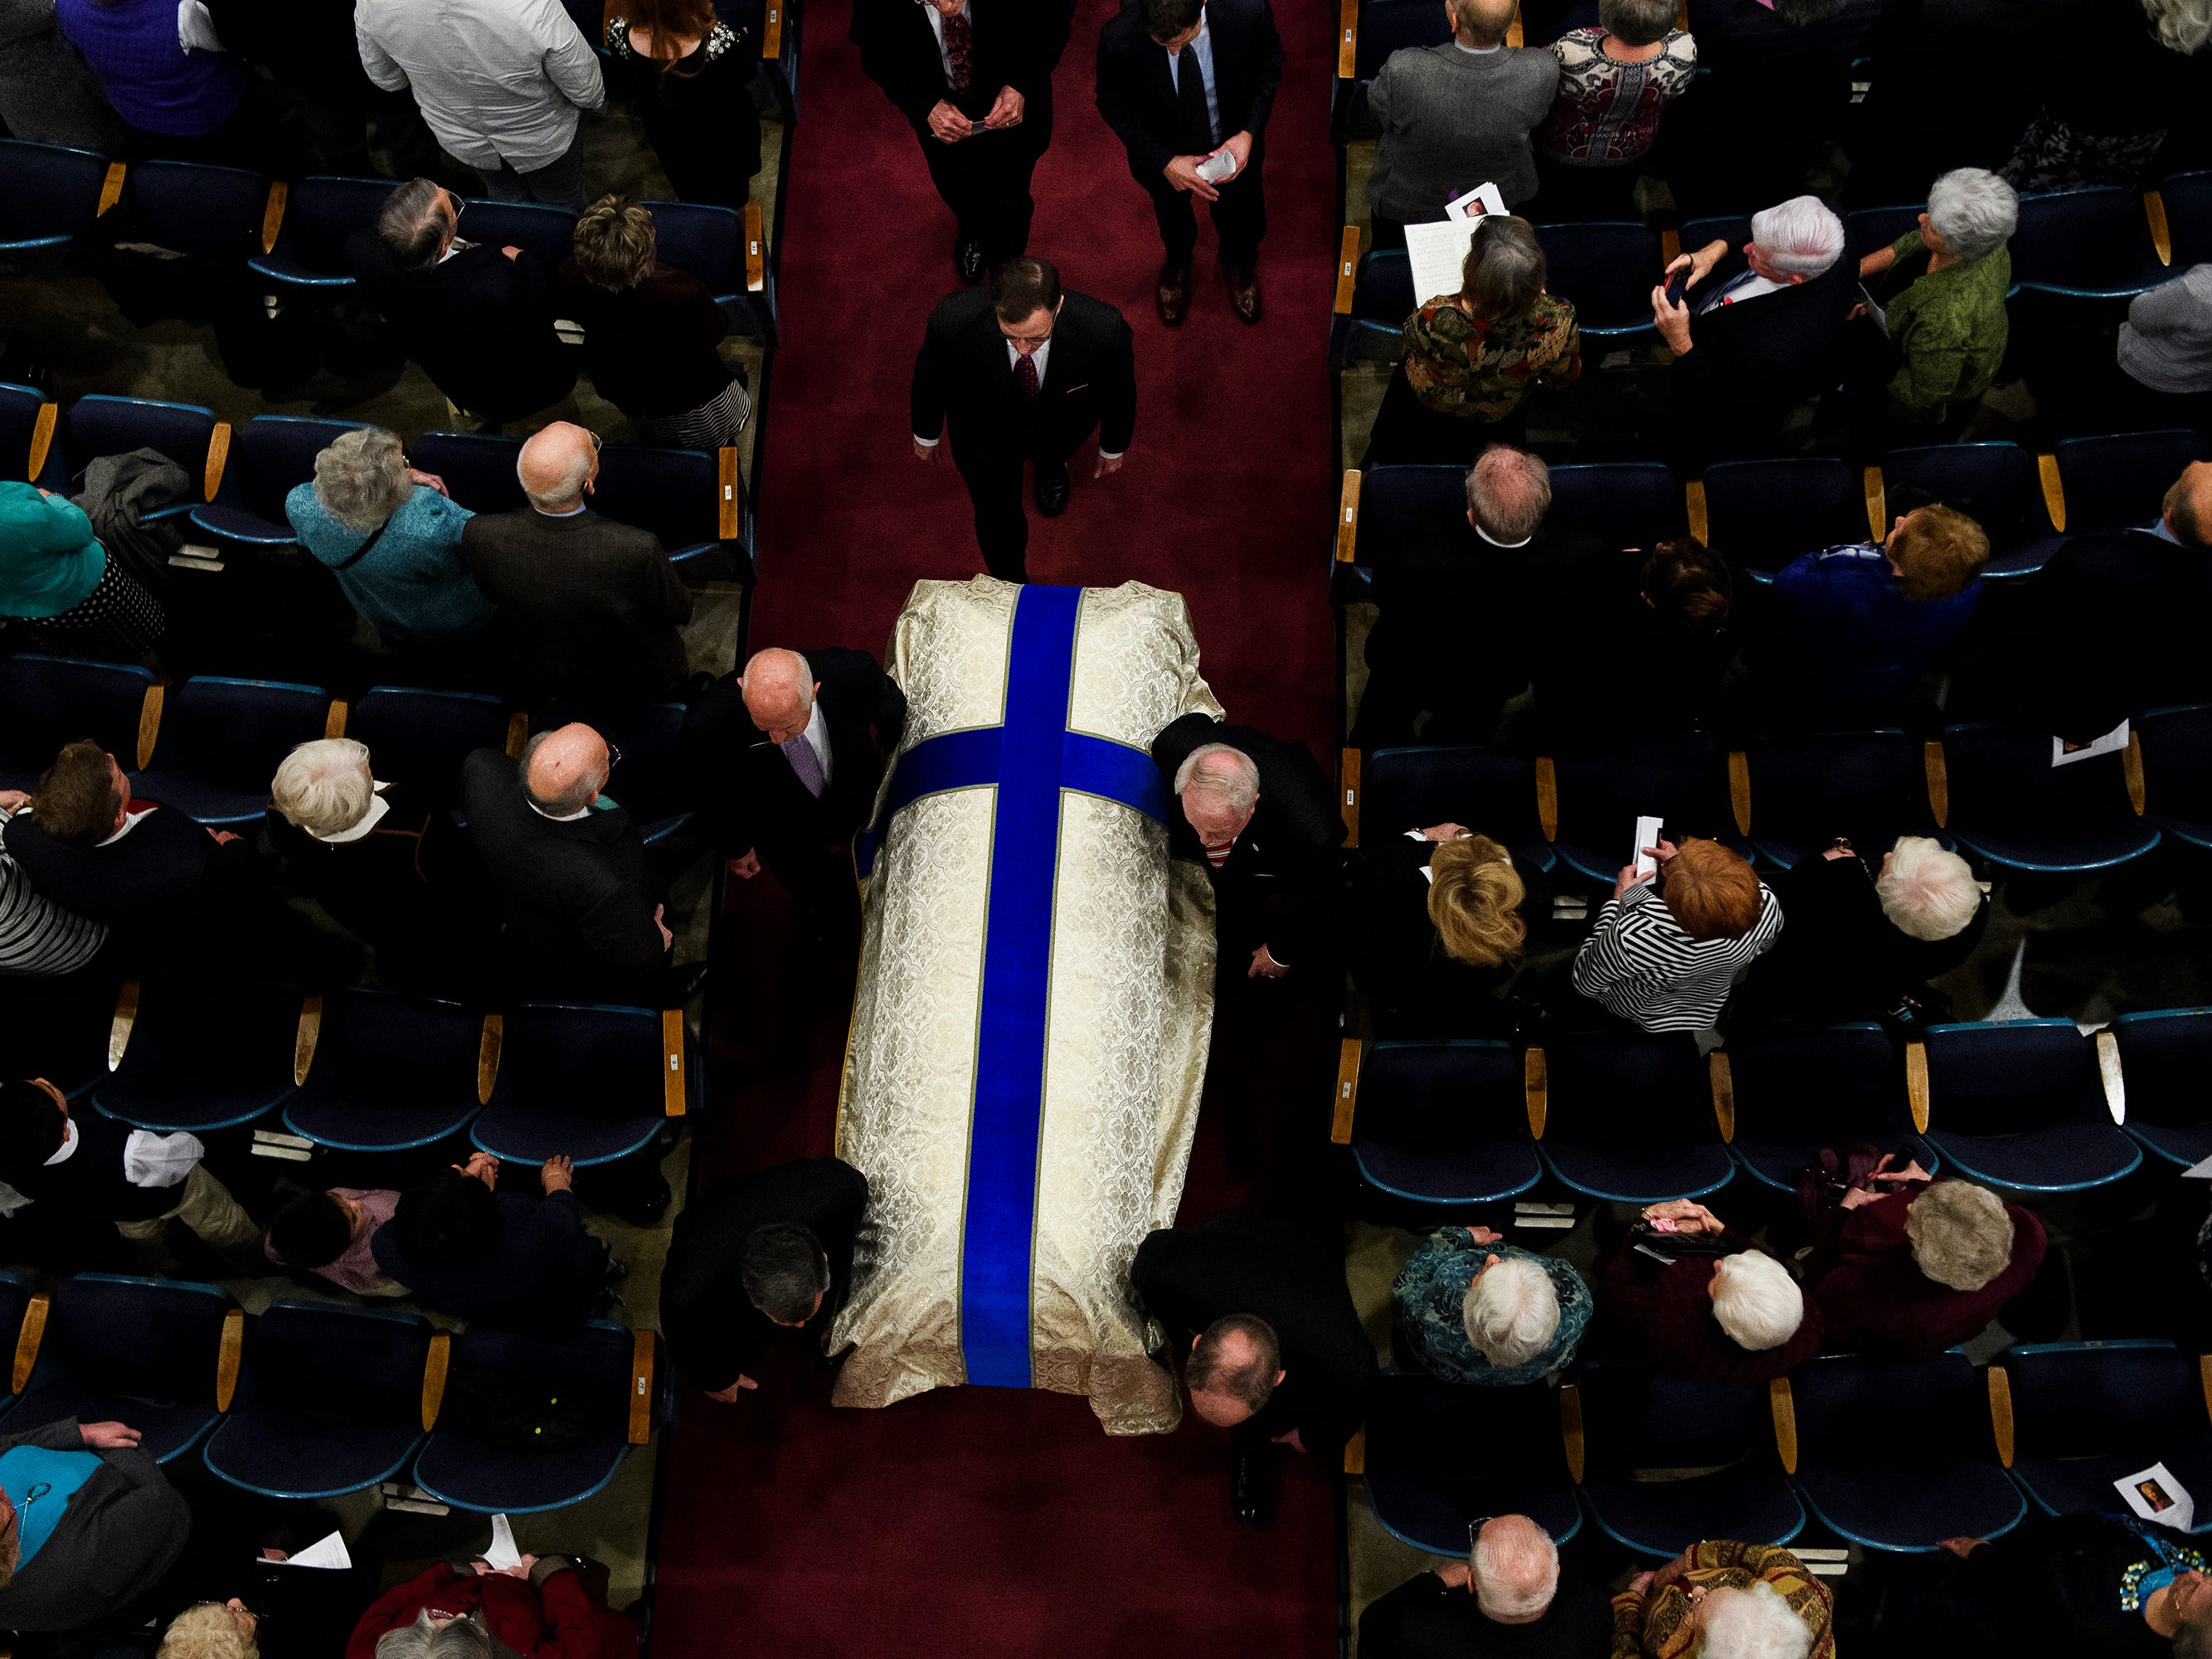 The body of Beneth Peters Jones is moved out of Founder's Memorial Amphitorium after her funeral service  on Wednesday, Feb. 6, 2019.